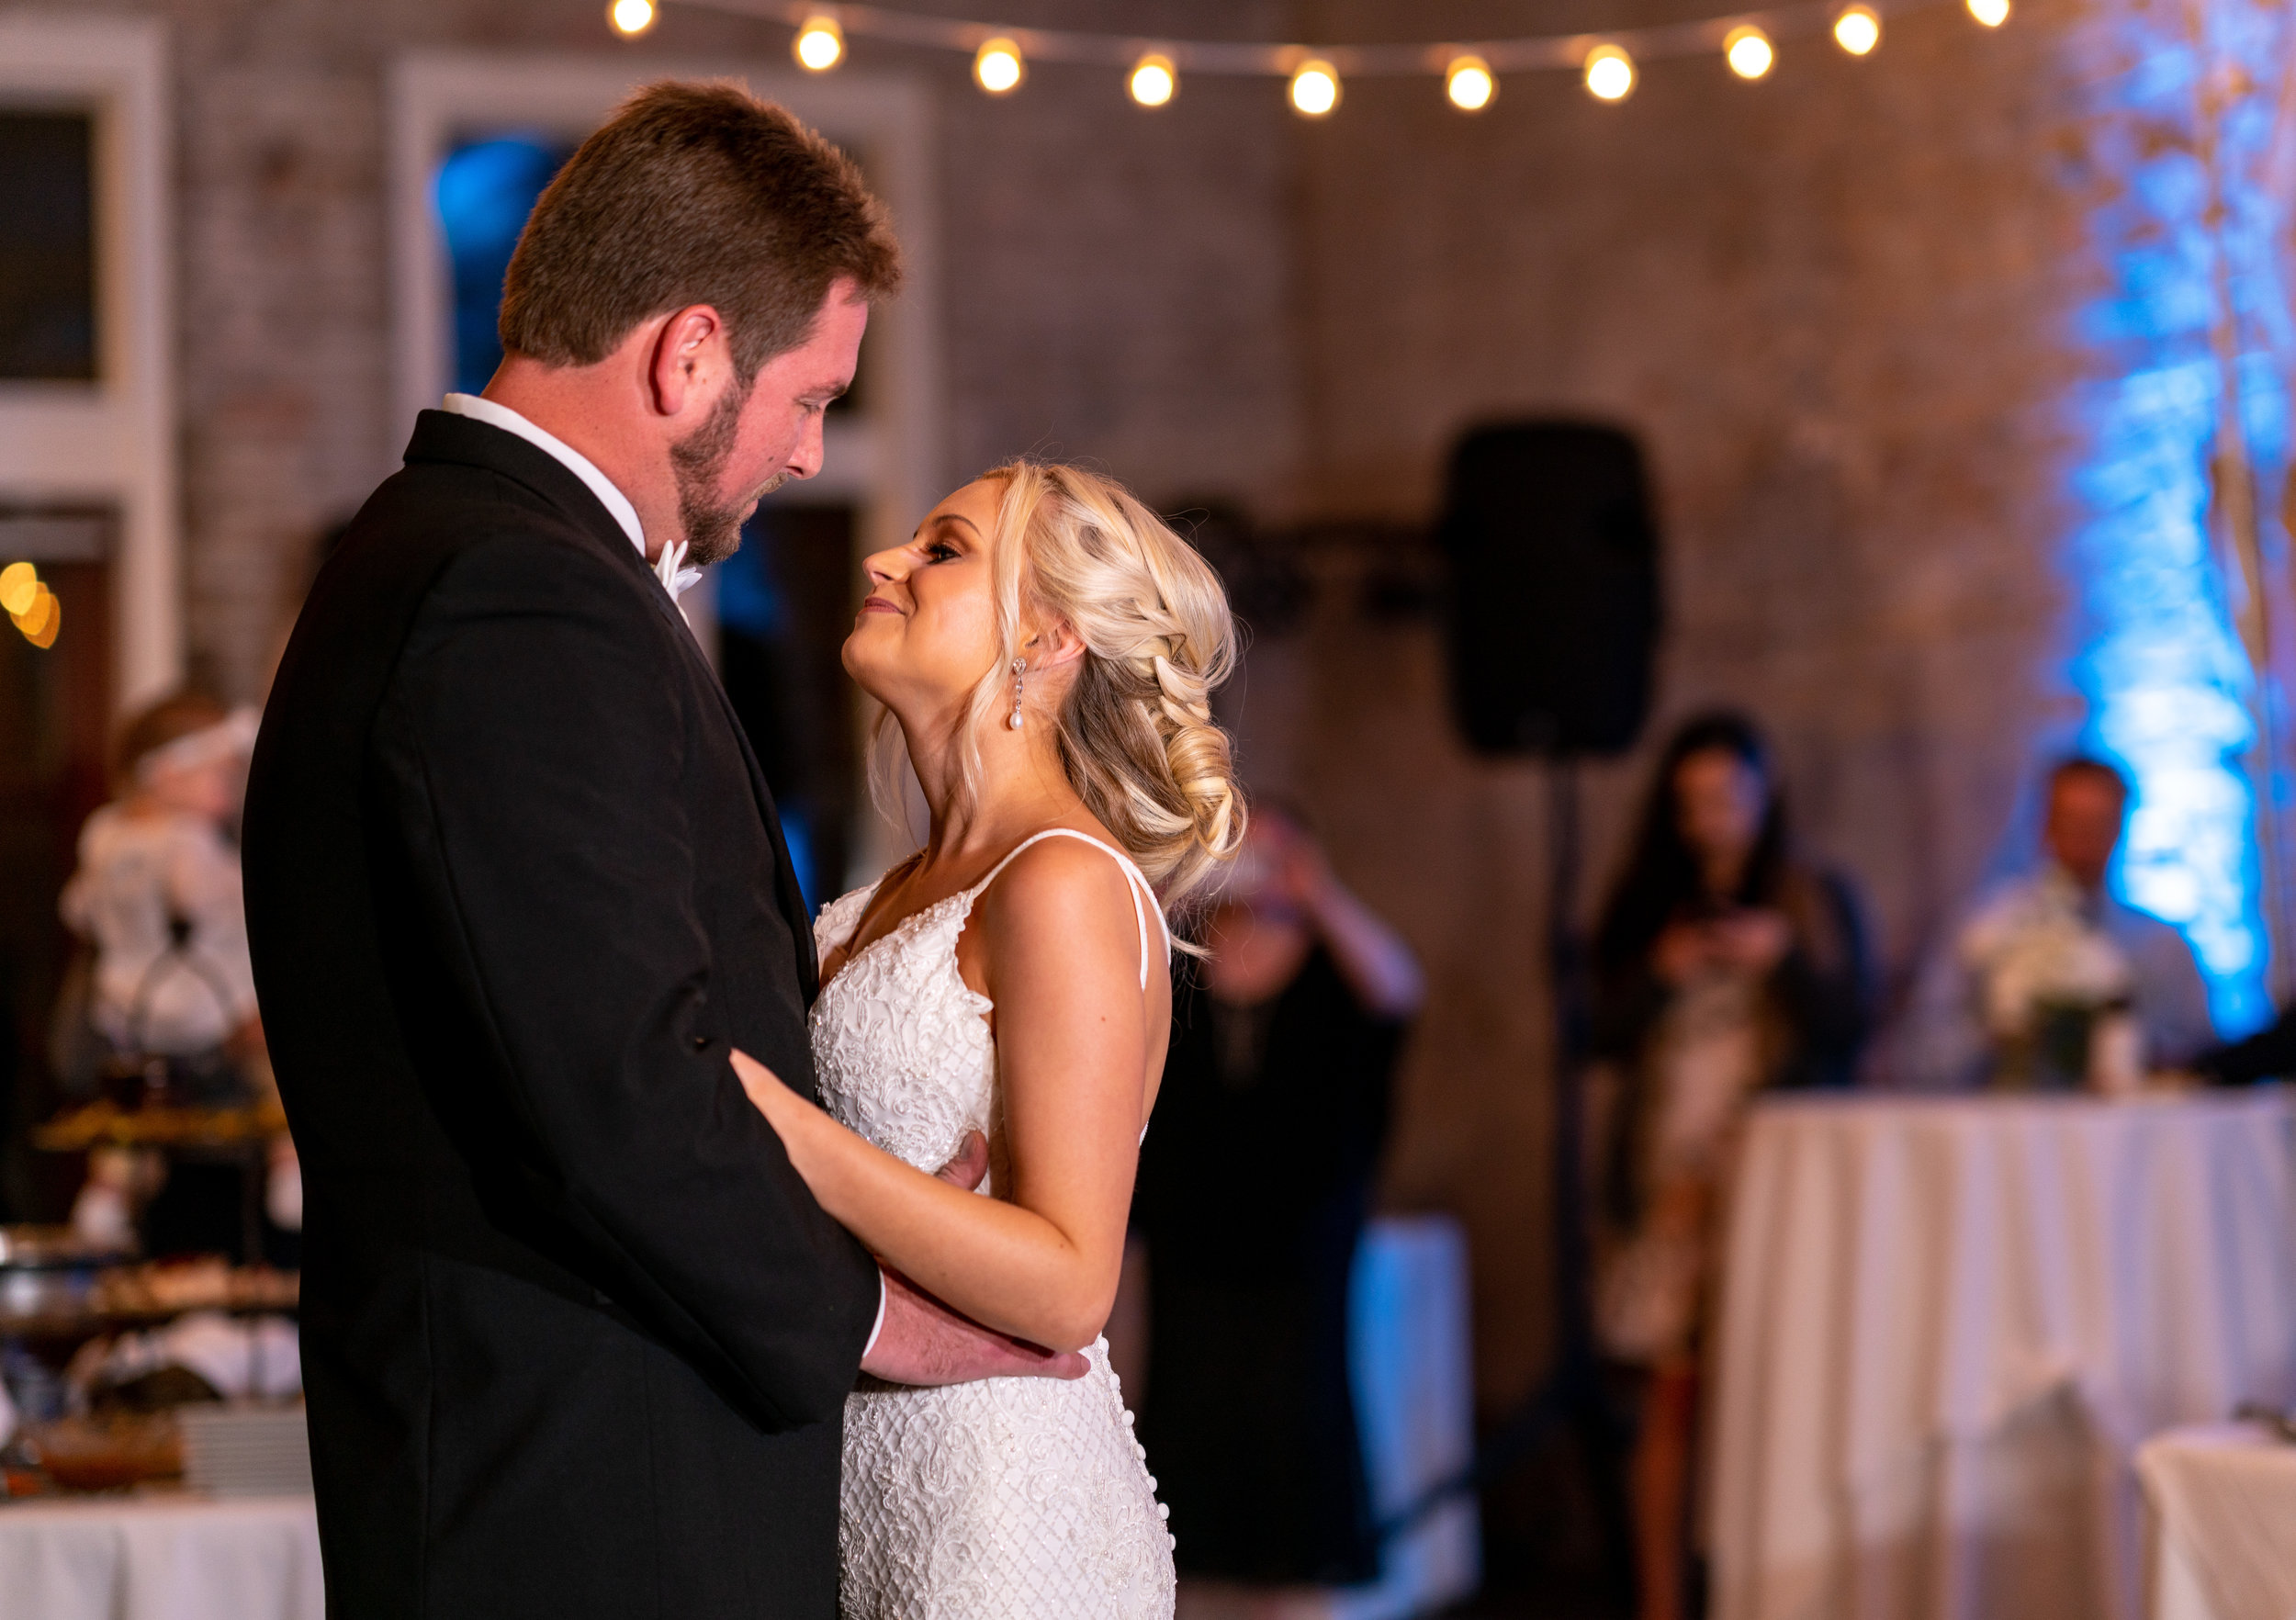 newlyweds-first-dance.jpg